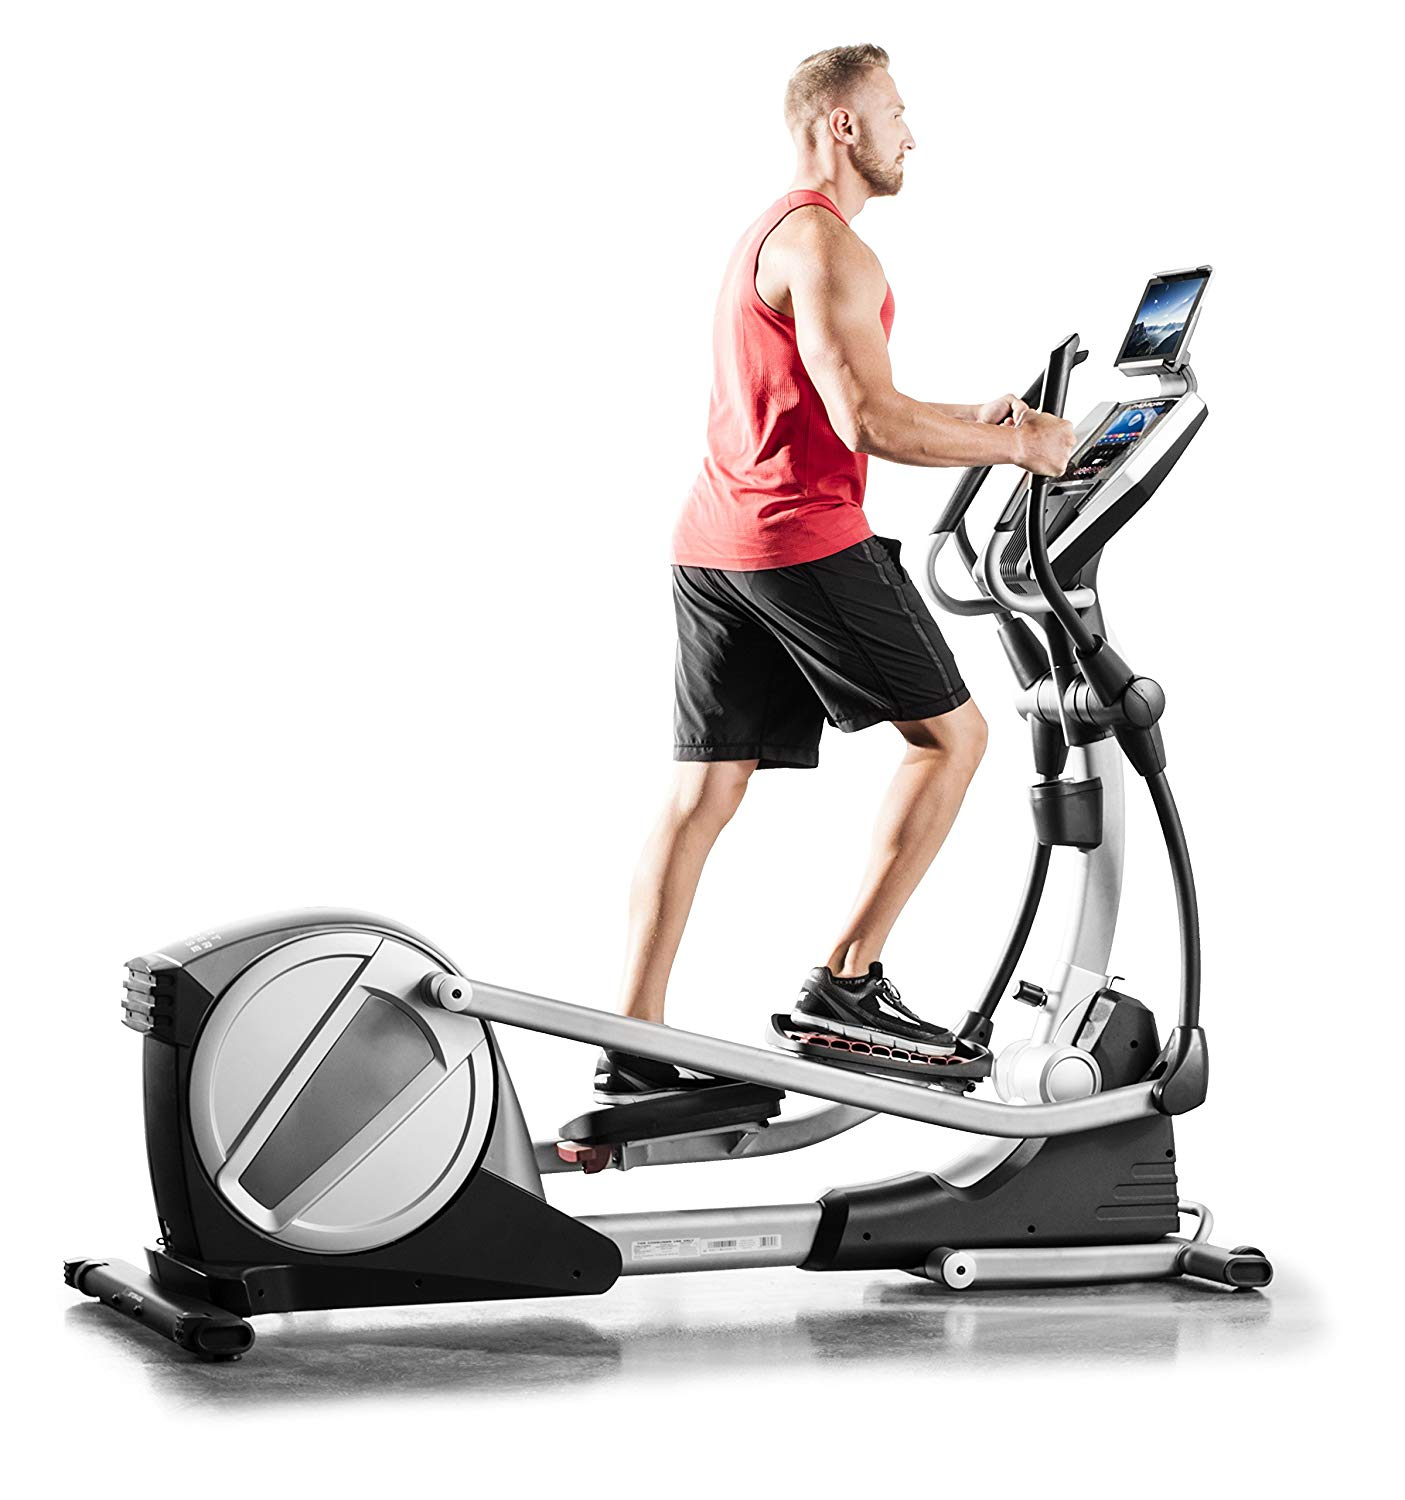 ProForm 895 Smart Strider Elliptical